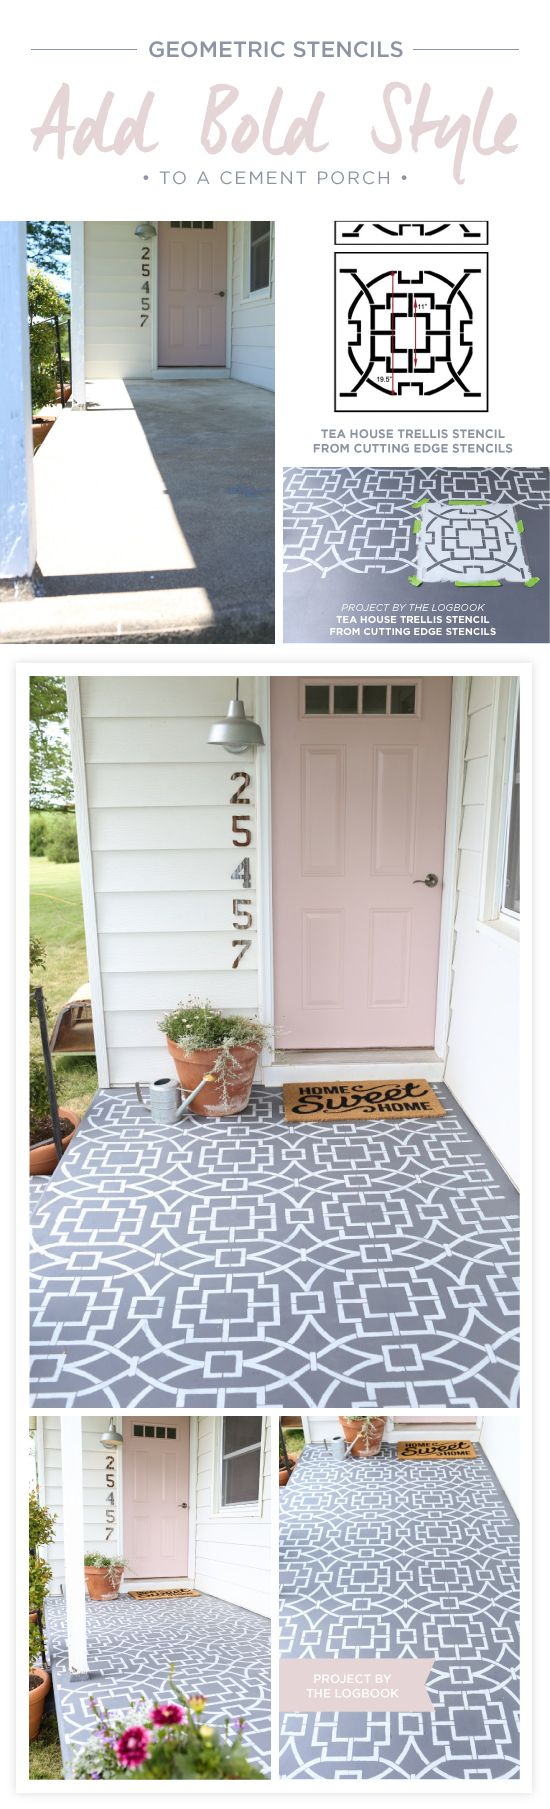 Cutting Edge Stencils shares a DIY stenciled concrete porch makeover using the Tea House Trellis Allover Stencil. http://www.cuttingedgestencils.com/tea-house-trellis-allover-stencil-pattern.html